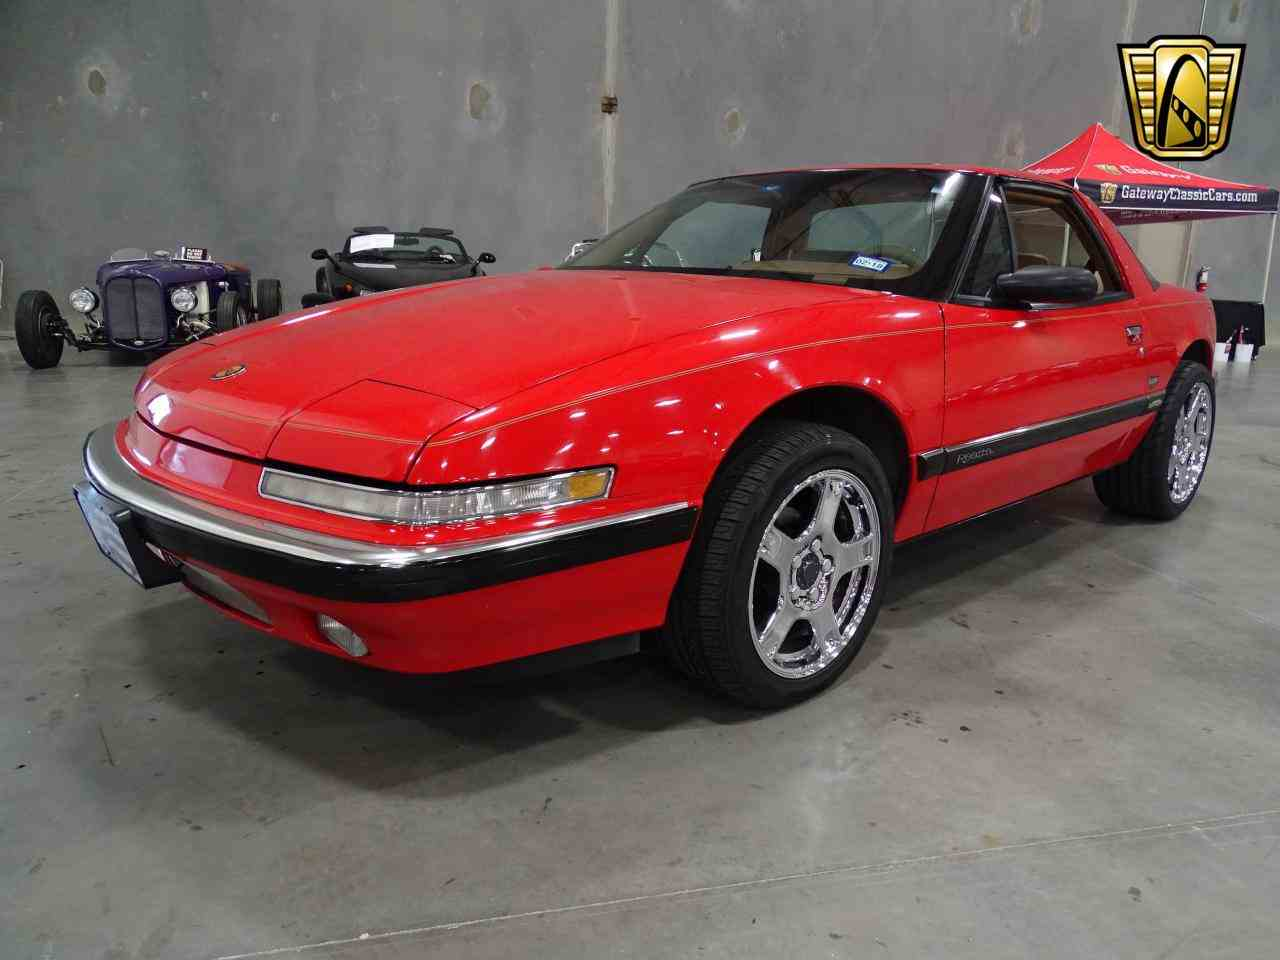 Large Picture of '90 Reatta located in Texas - $8,995.00 Offered by Gateway Classic Cars - Dallas - KOB1